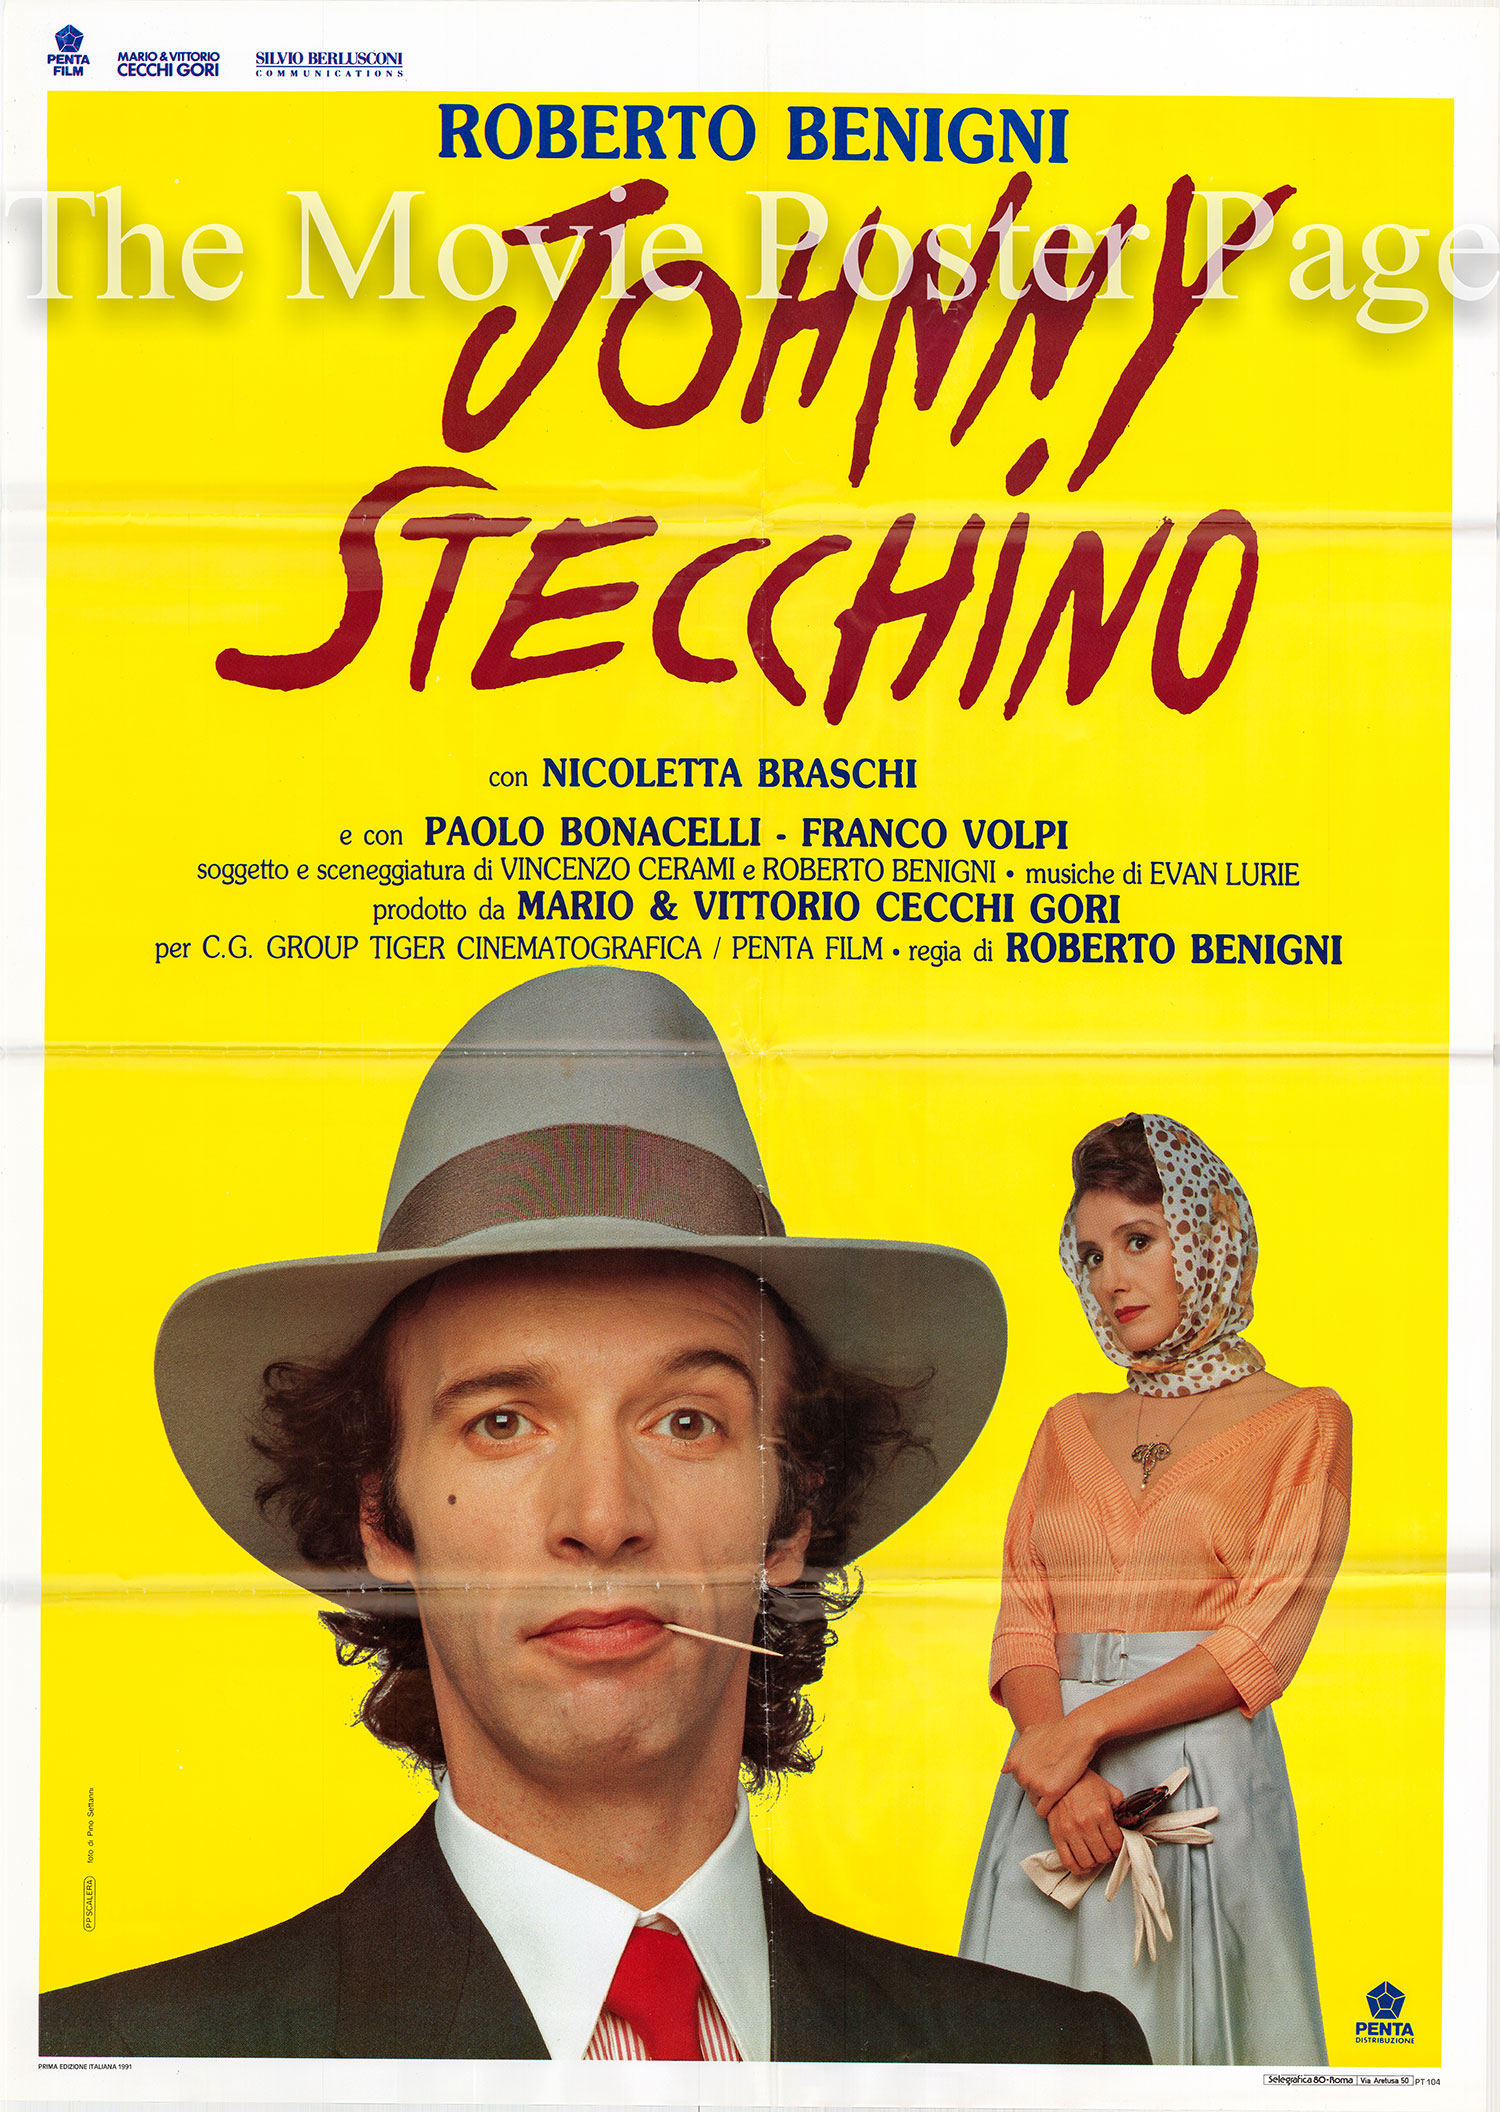 Pictured is an Italian two-sheet promotional poster for the 1992 Roberto Benigni film Johnny Stecchino based on a screenplay by Roberto Benigni and Vincenzo Cerami and starring Roberto Benigni as Johnny Stecchino.